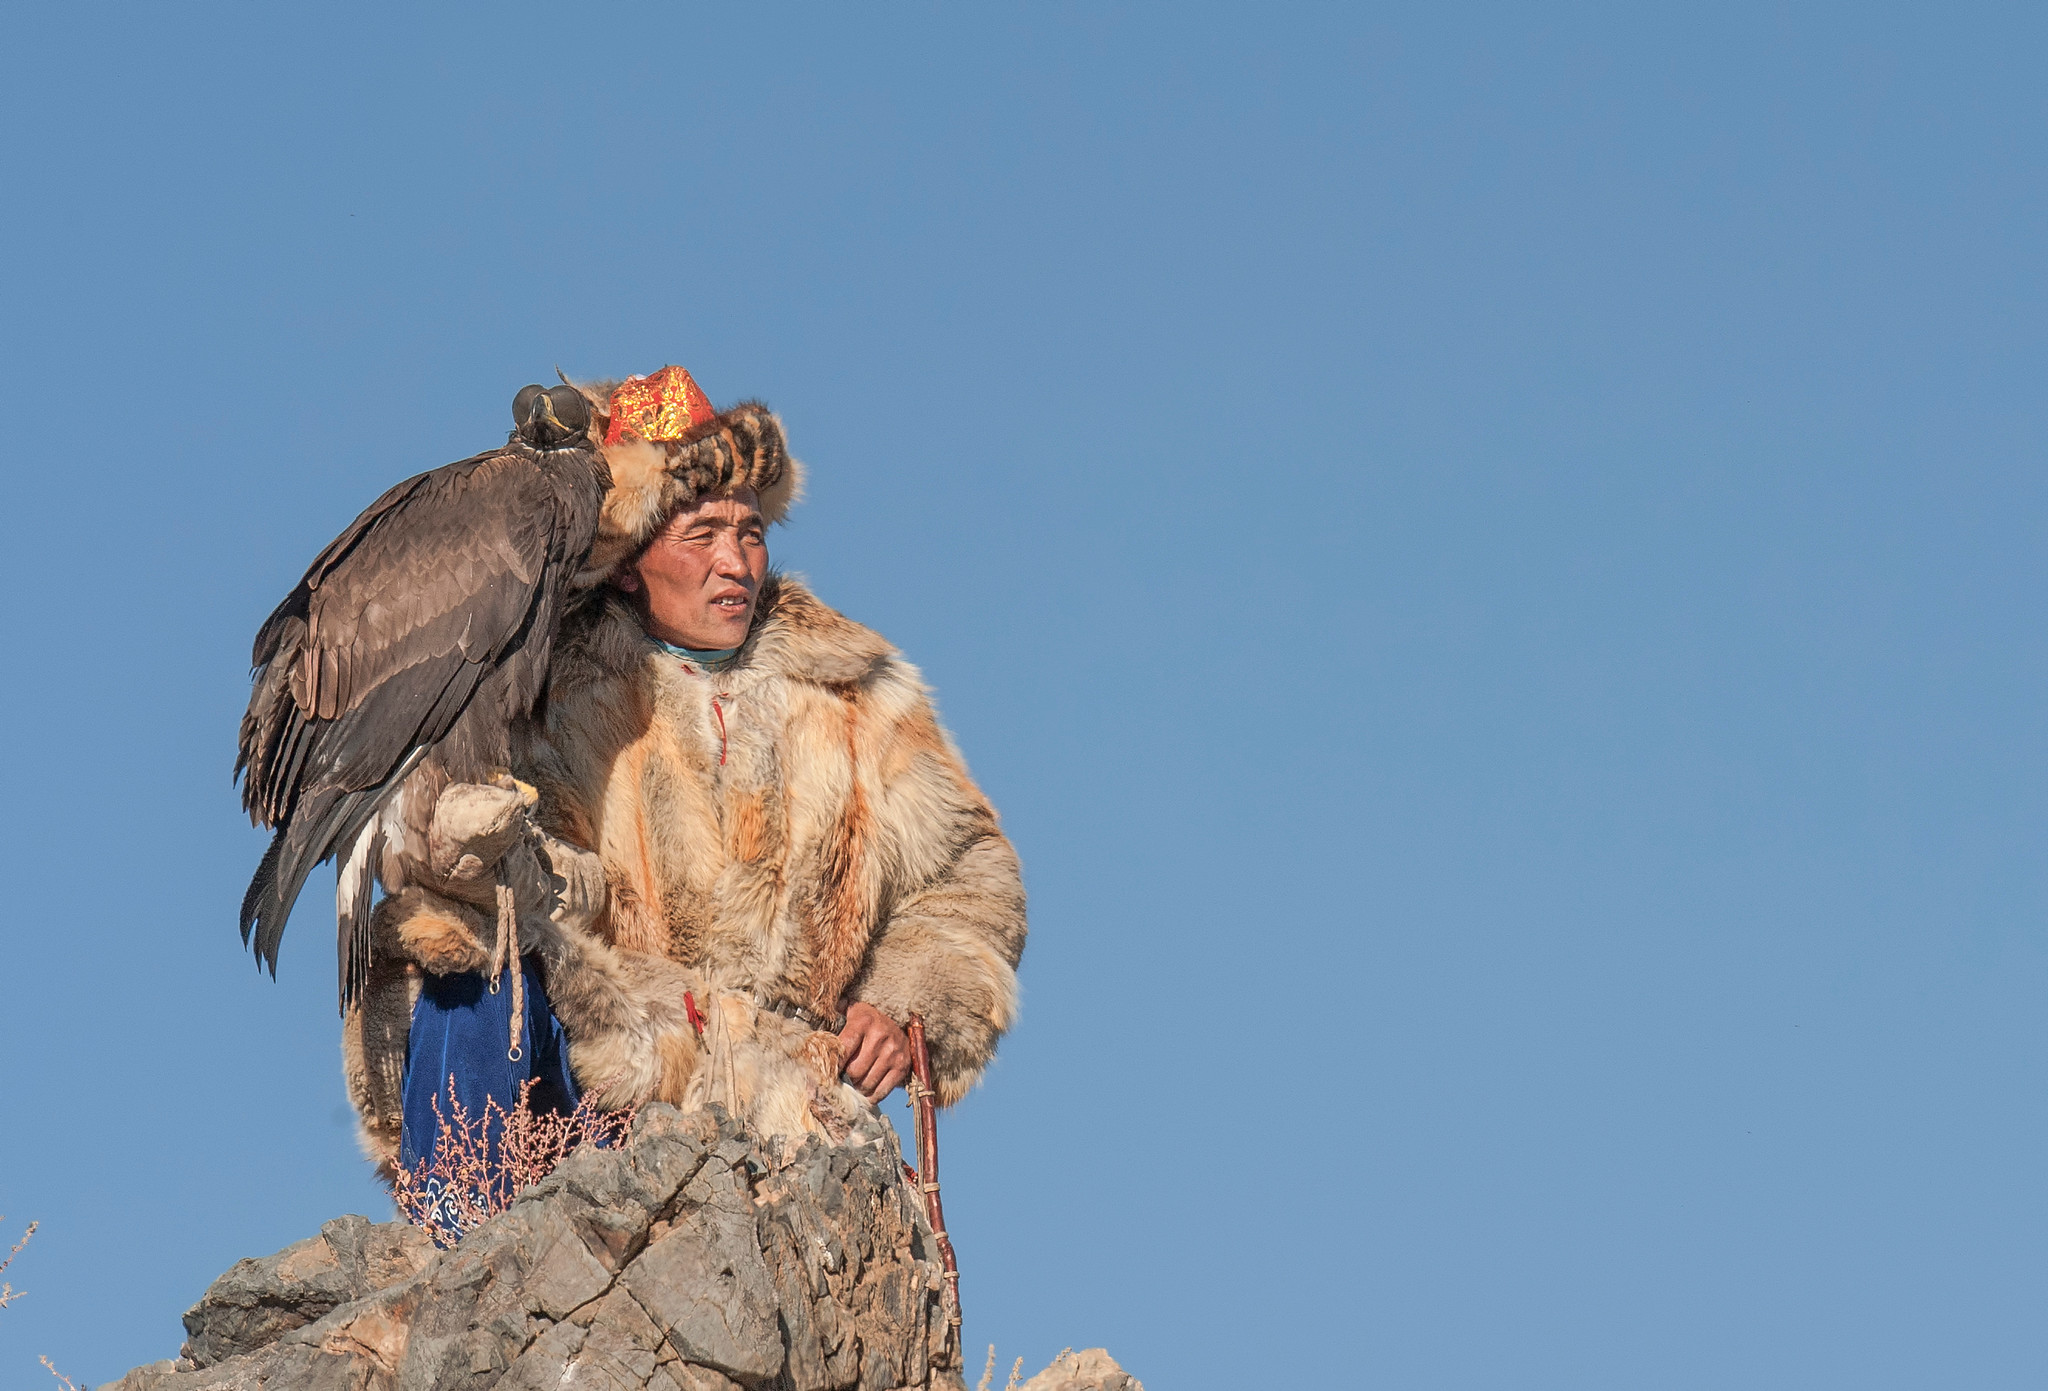 kazakh eagle hunter on top of mountain with eagle-X4.jpg